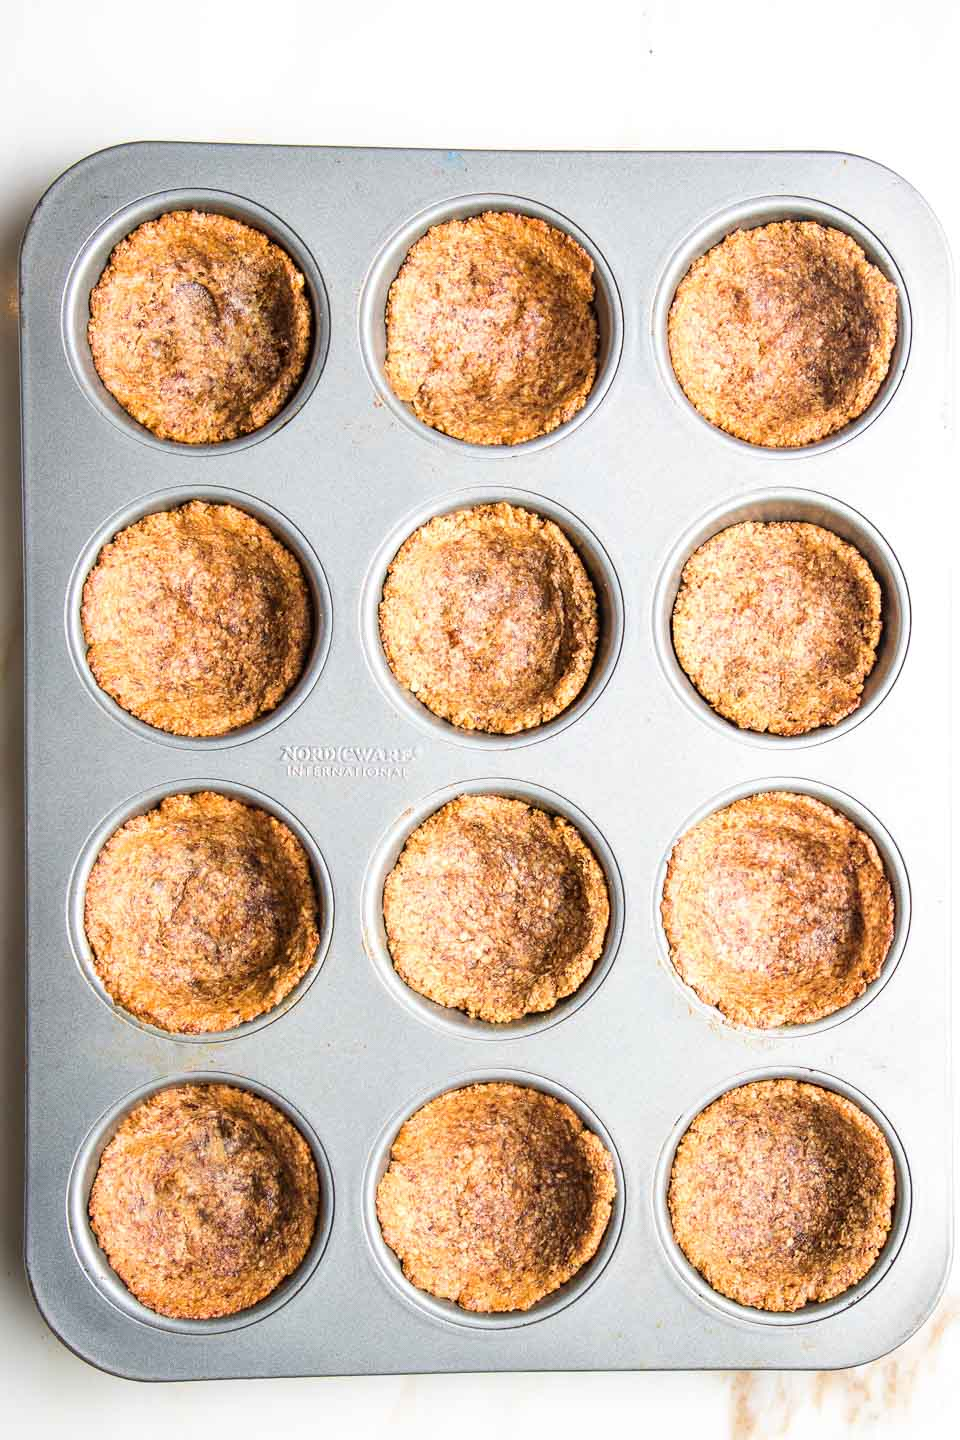 Muffin tins filled with pre-baked gluten-free pumpkin pie crusts.